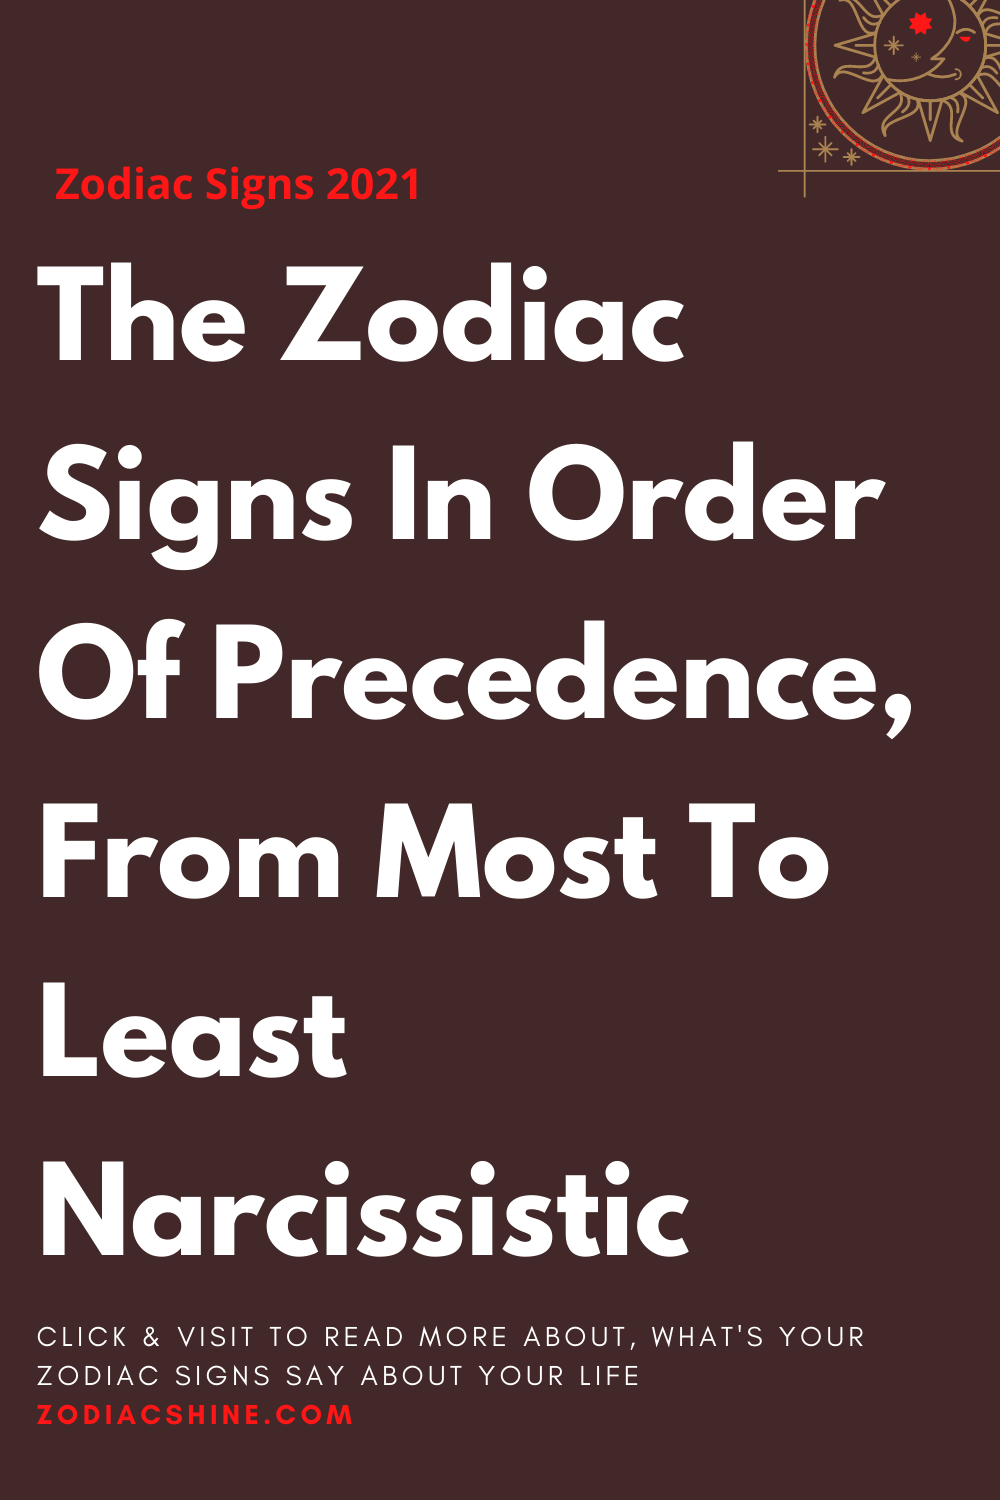 The Zodiac Signs In Order Of Precedence, From Most To Least Narcissistic